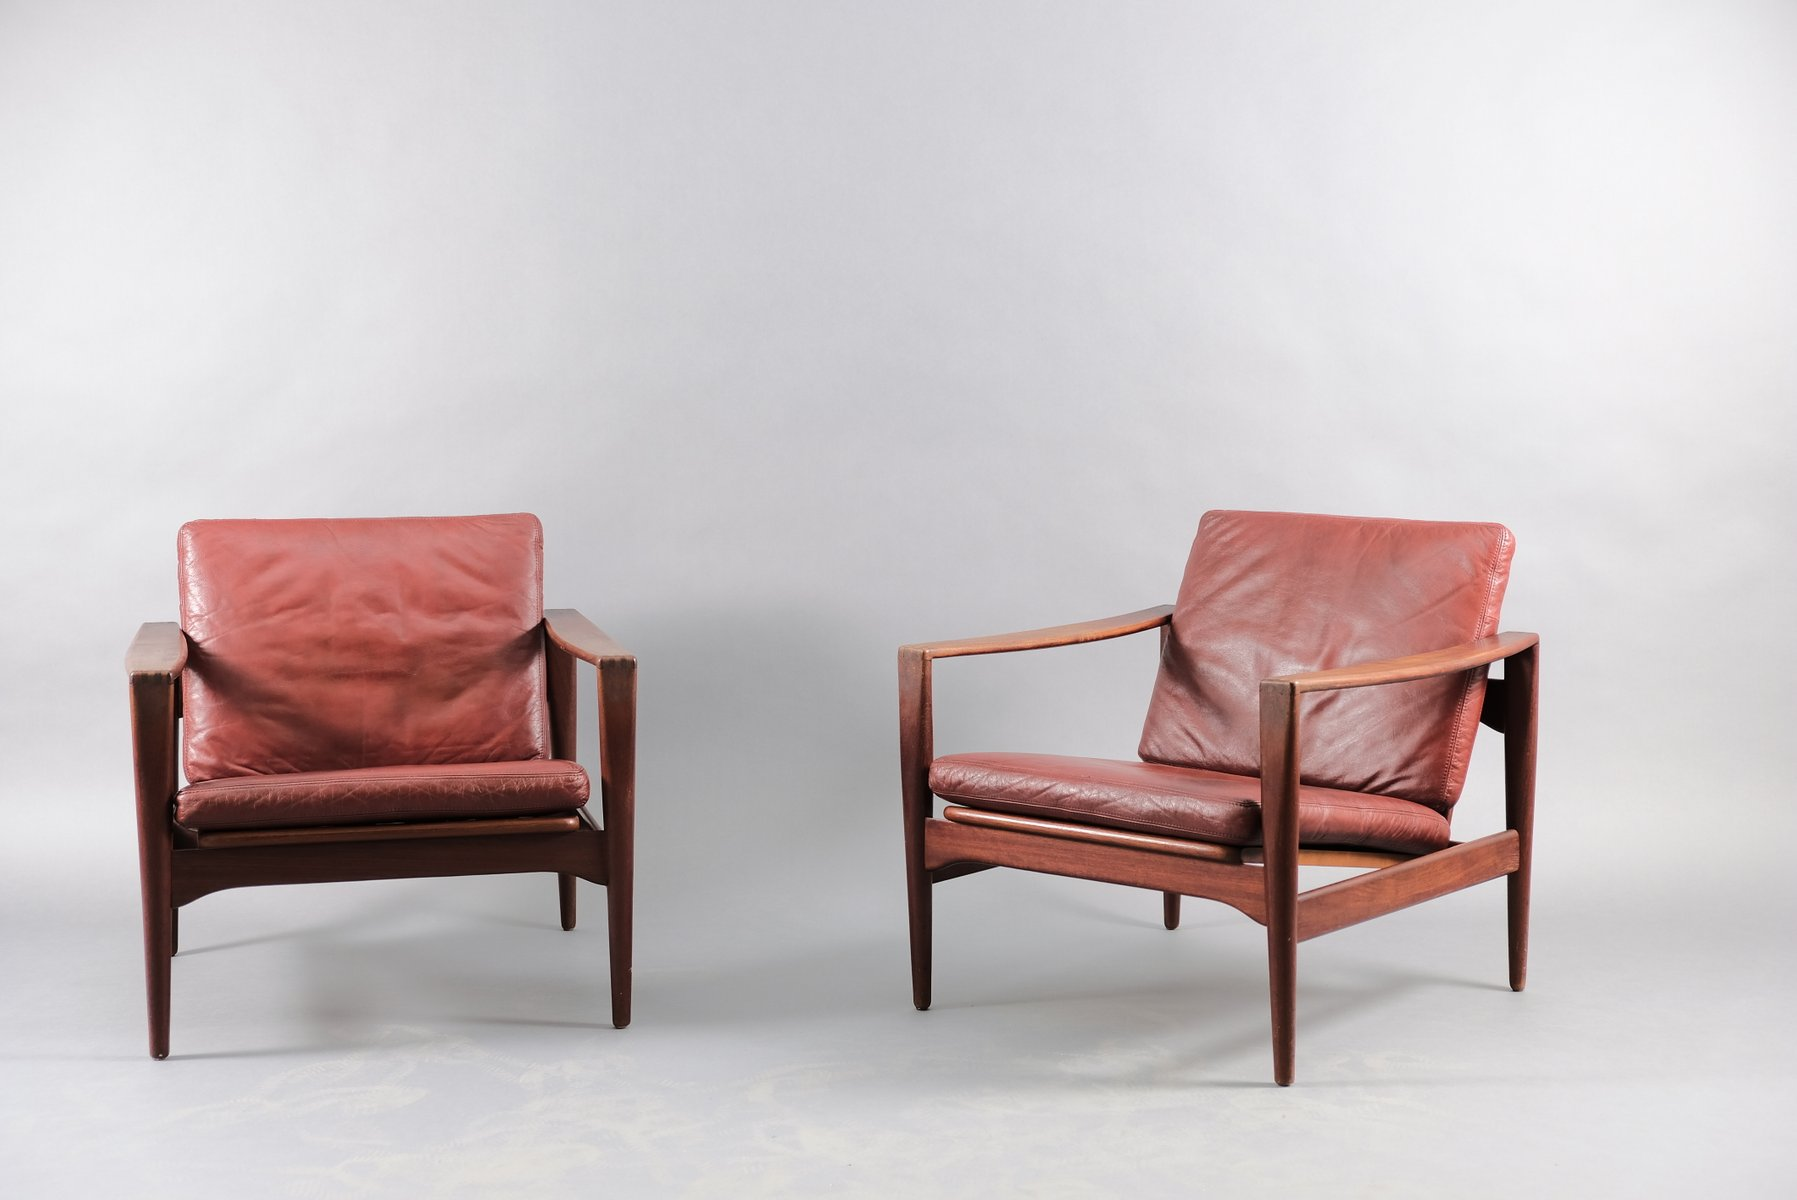 Mid Century Lounge Chairs By Illum Wikkelsø For Niels Eilersen 1960s Set Of 2 For Sale At Pamono